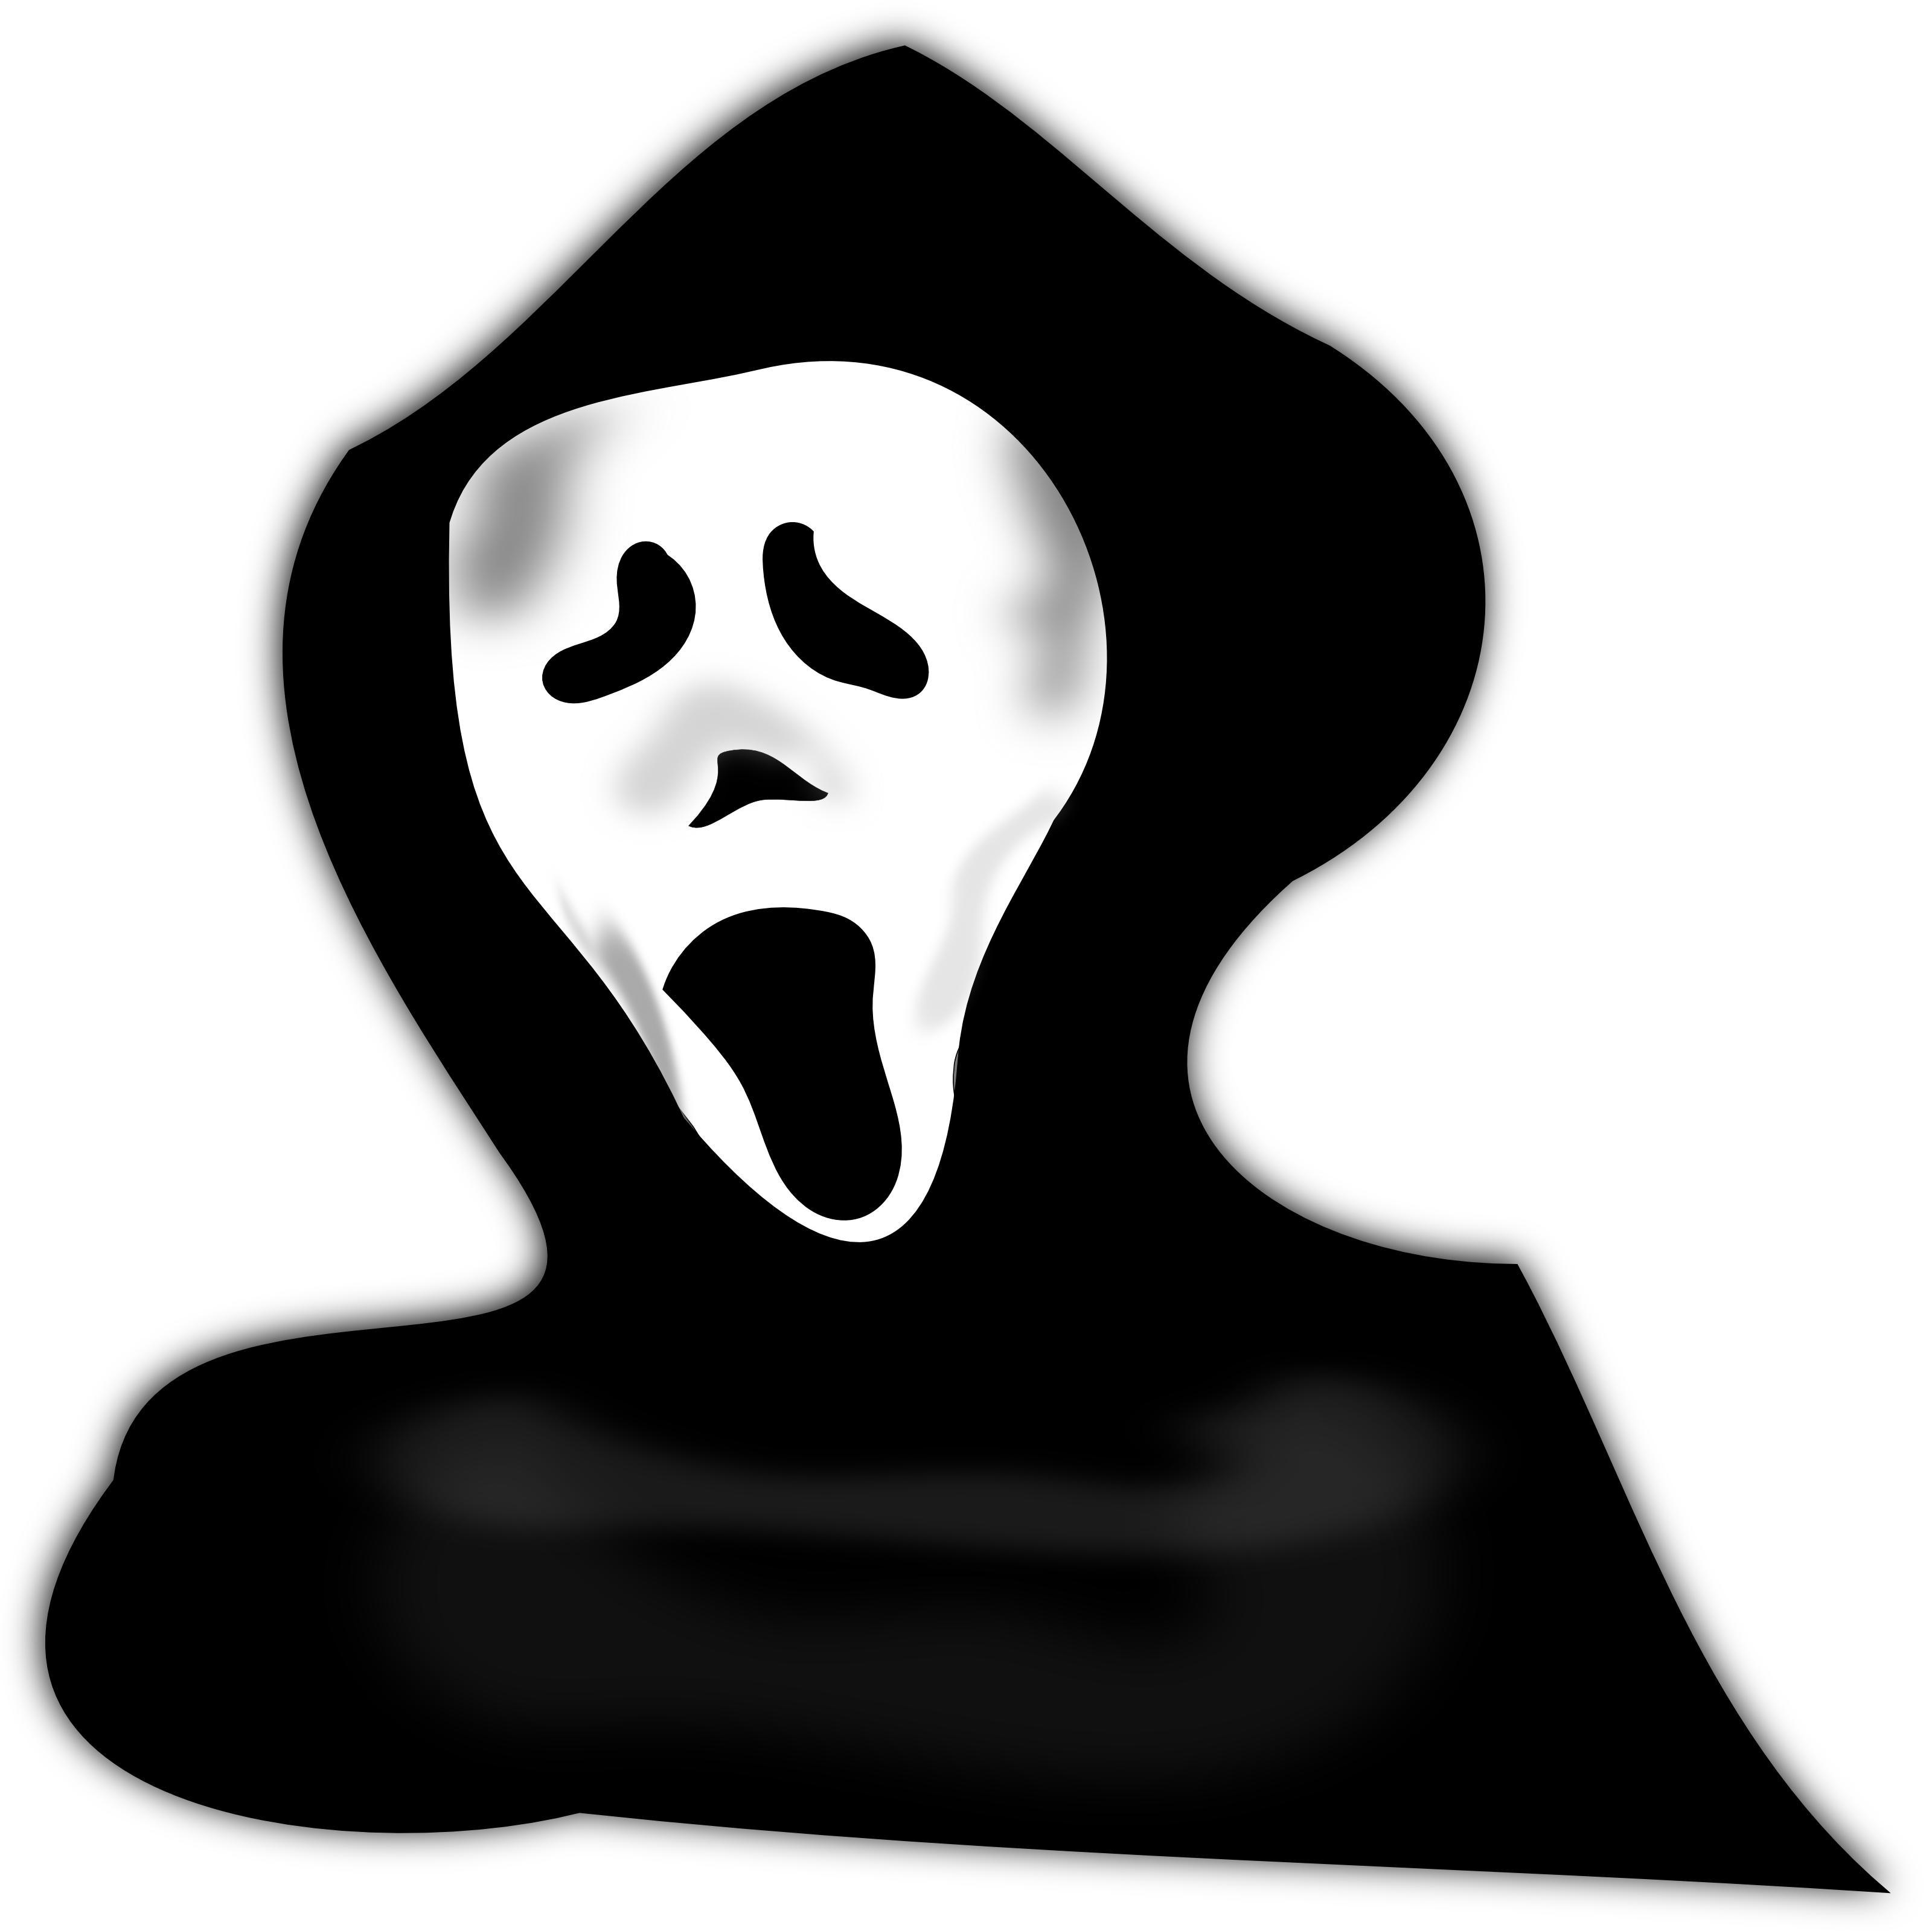 uploads ghost ghost PNG65 5